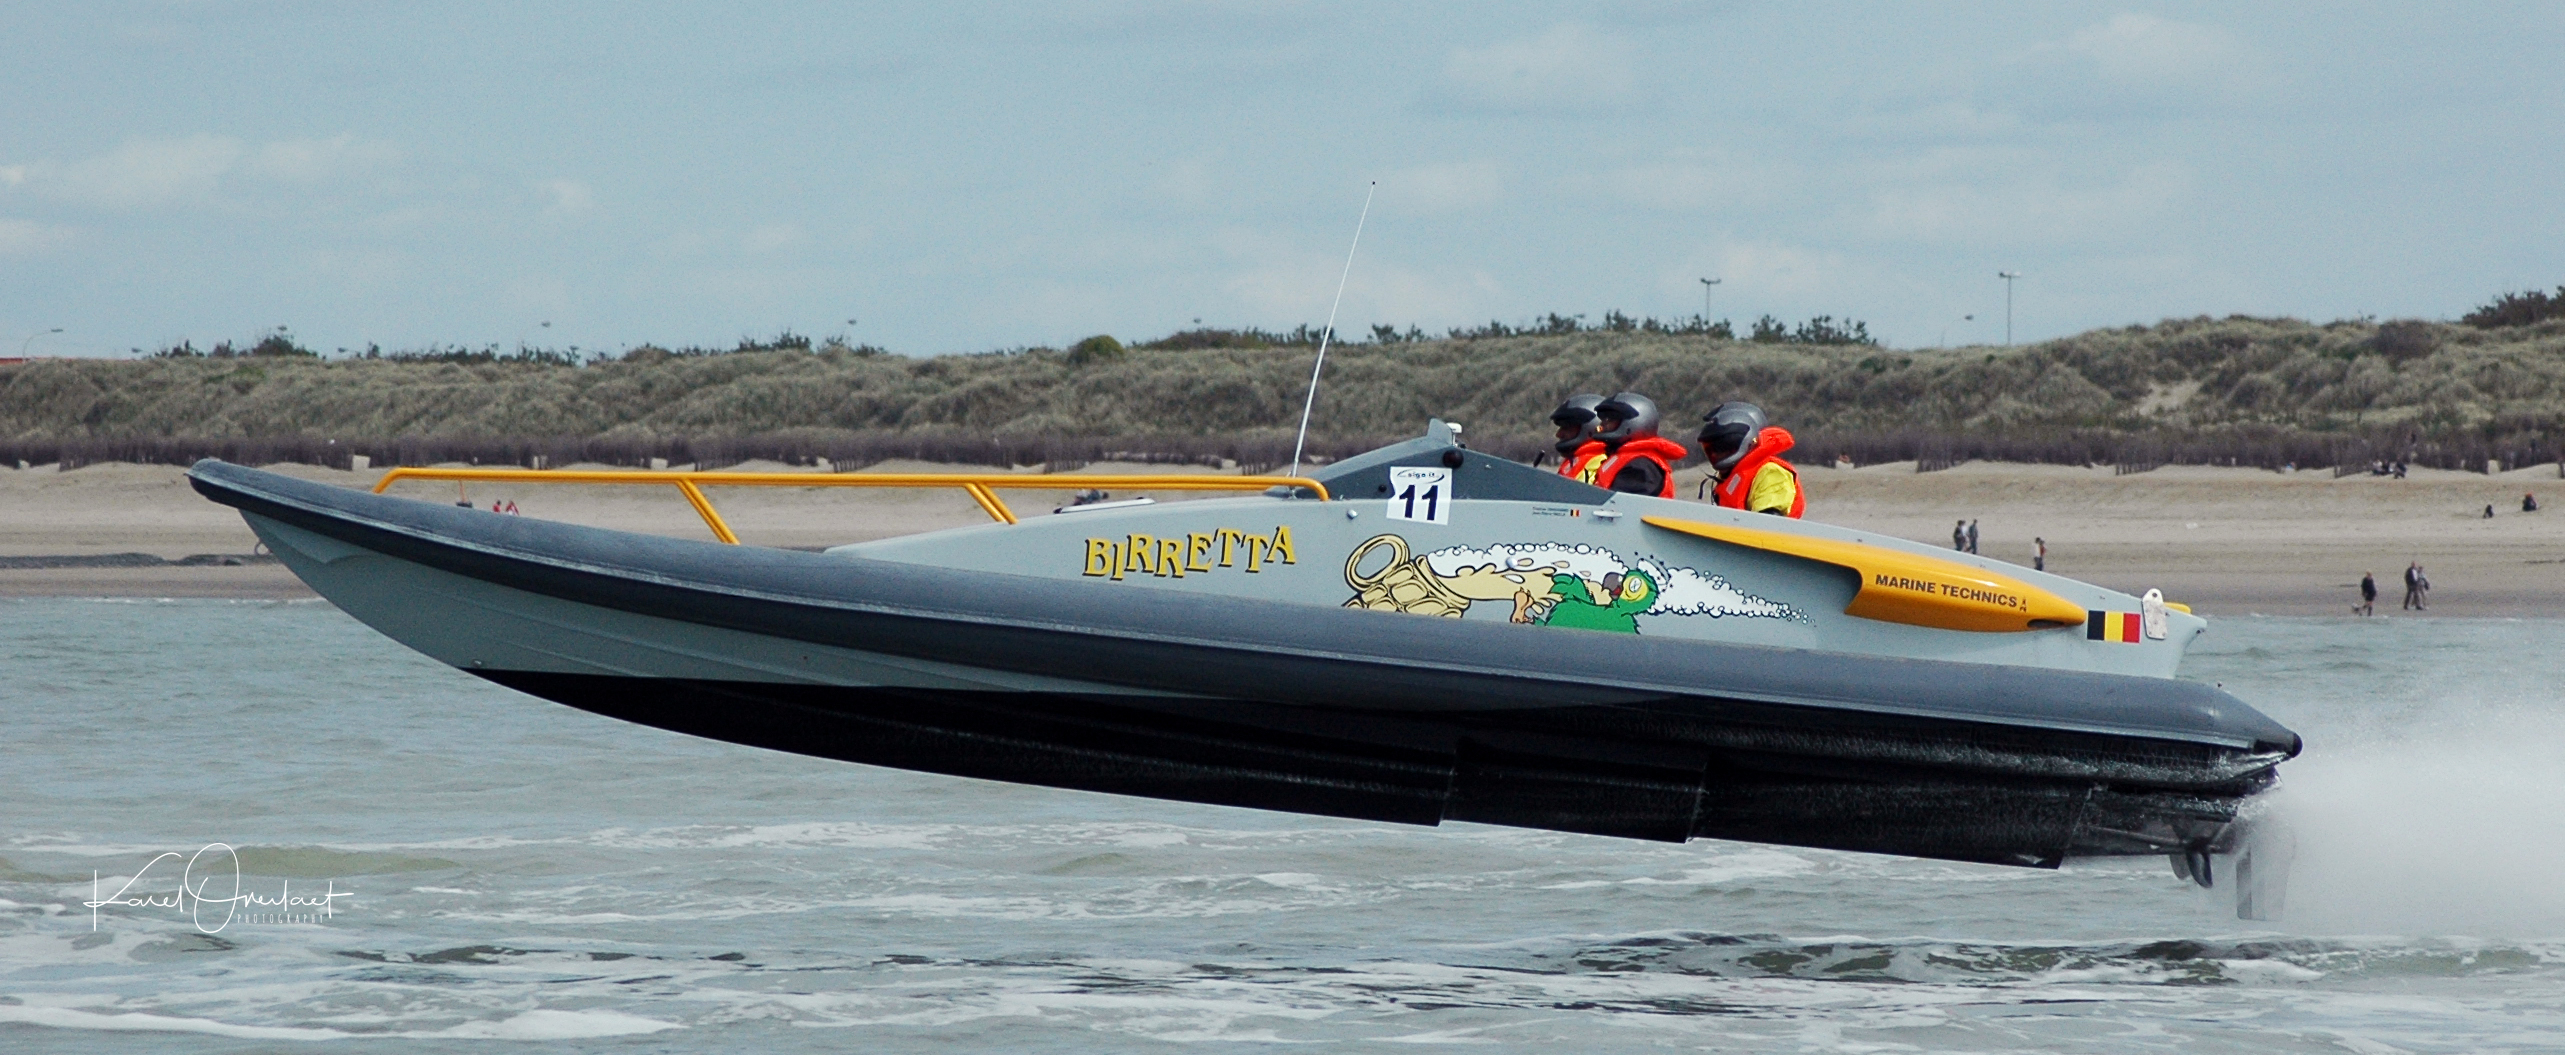 The Belgian Offshore Challenge: a decade of fun and passion